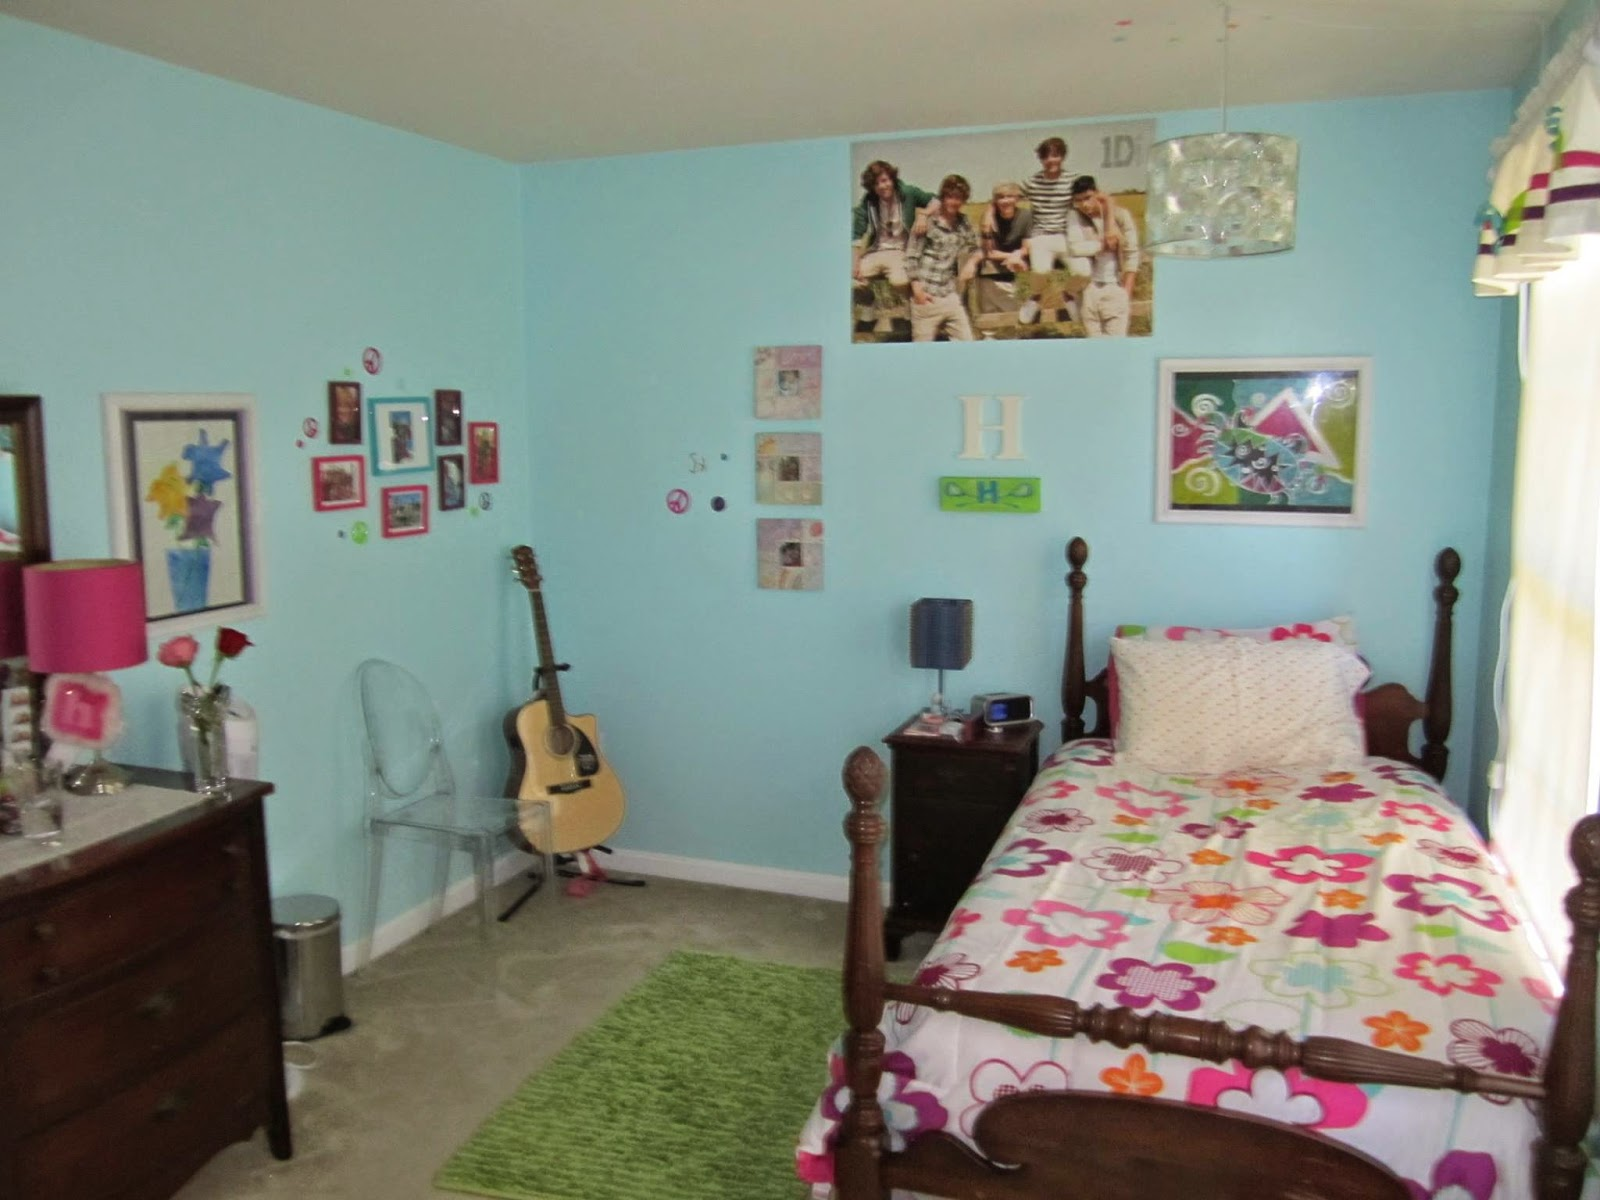 Here S The Room That Provided Wall Color Inspiration It A Pretty Aqua Blue